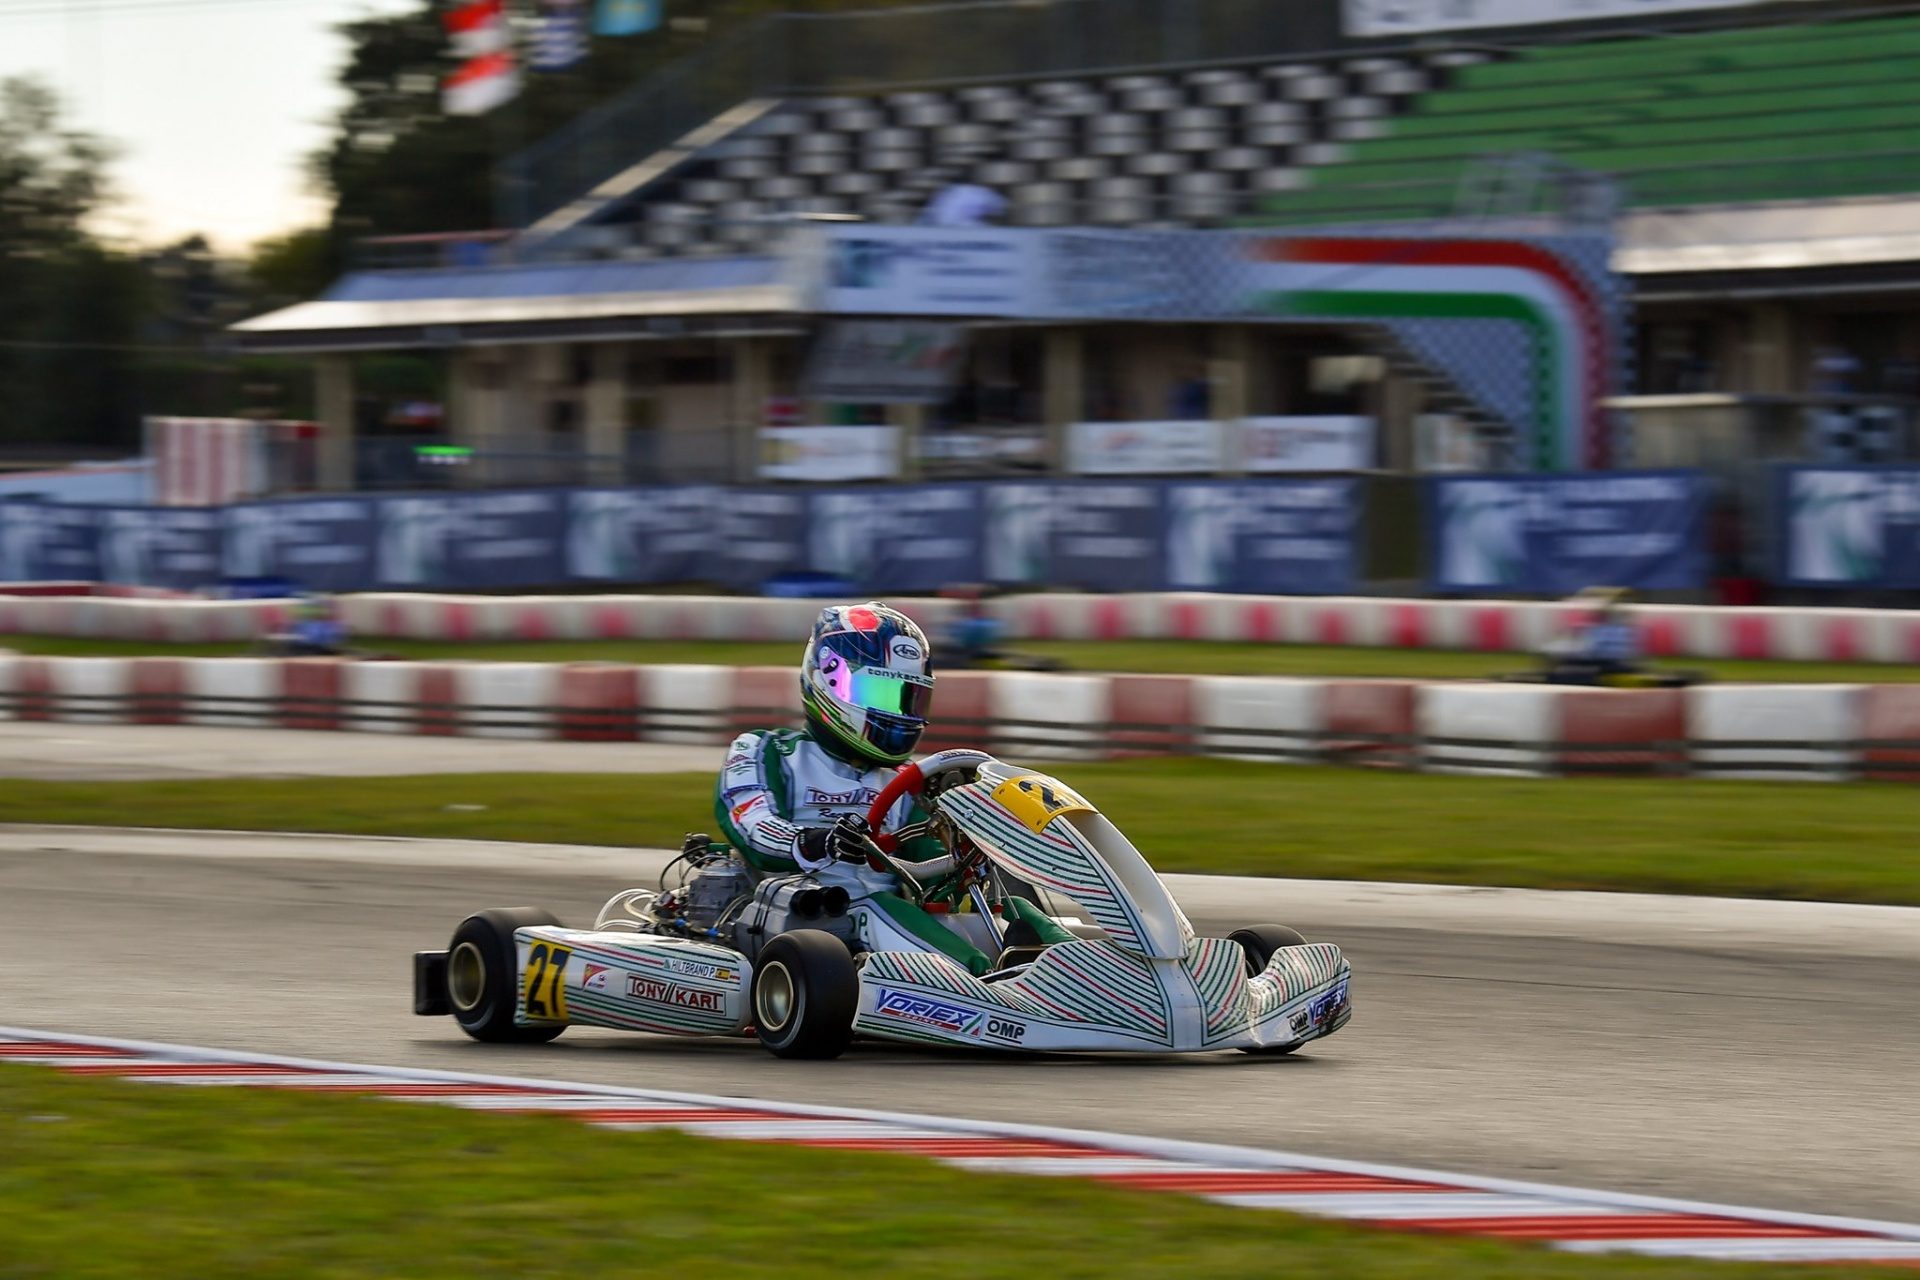 Official statement – Tony Kart